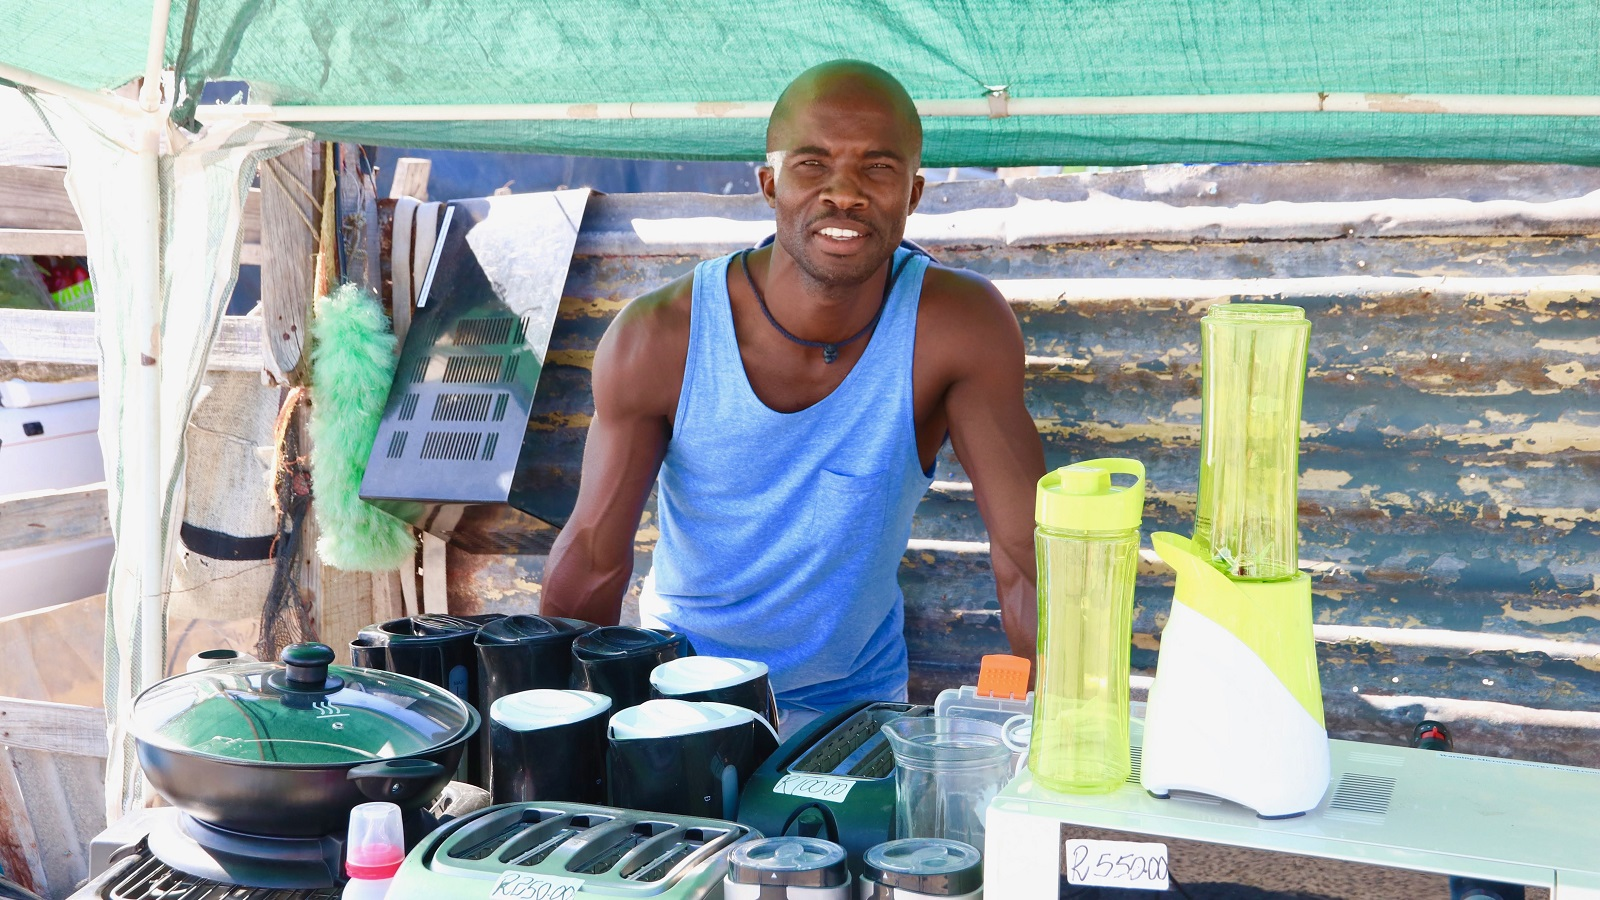 New programme offers opportunities for unemployed South Africans - Ventureburn